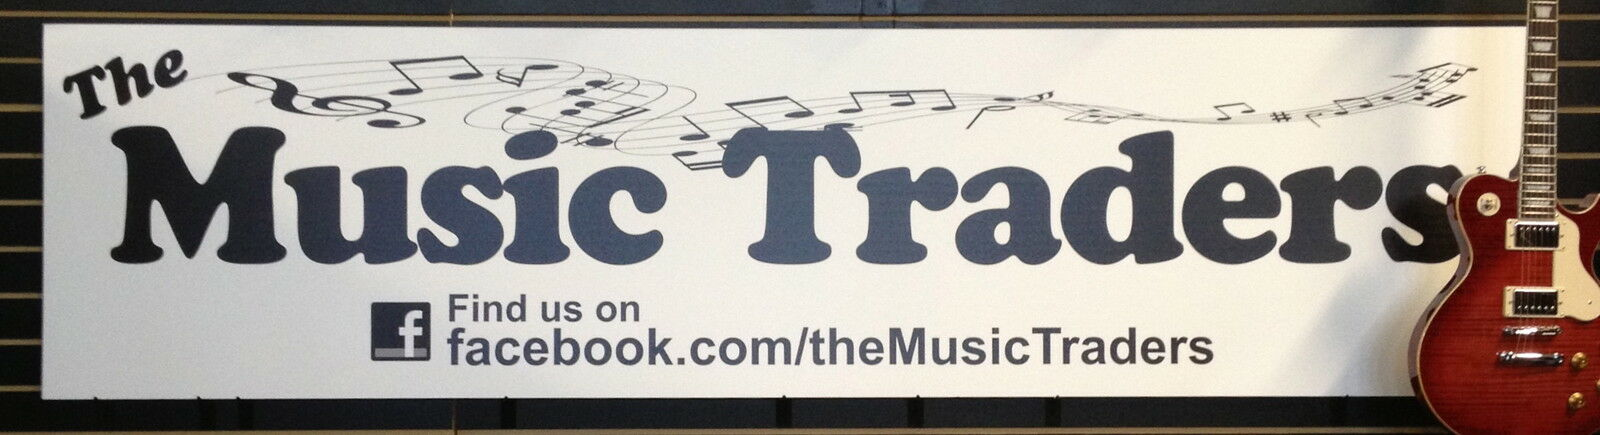 The Music Traders